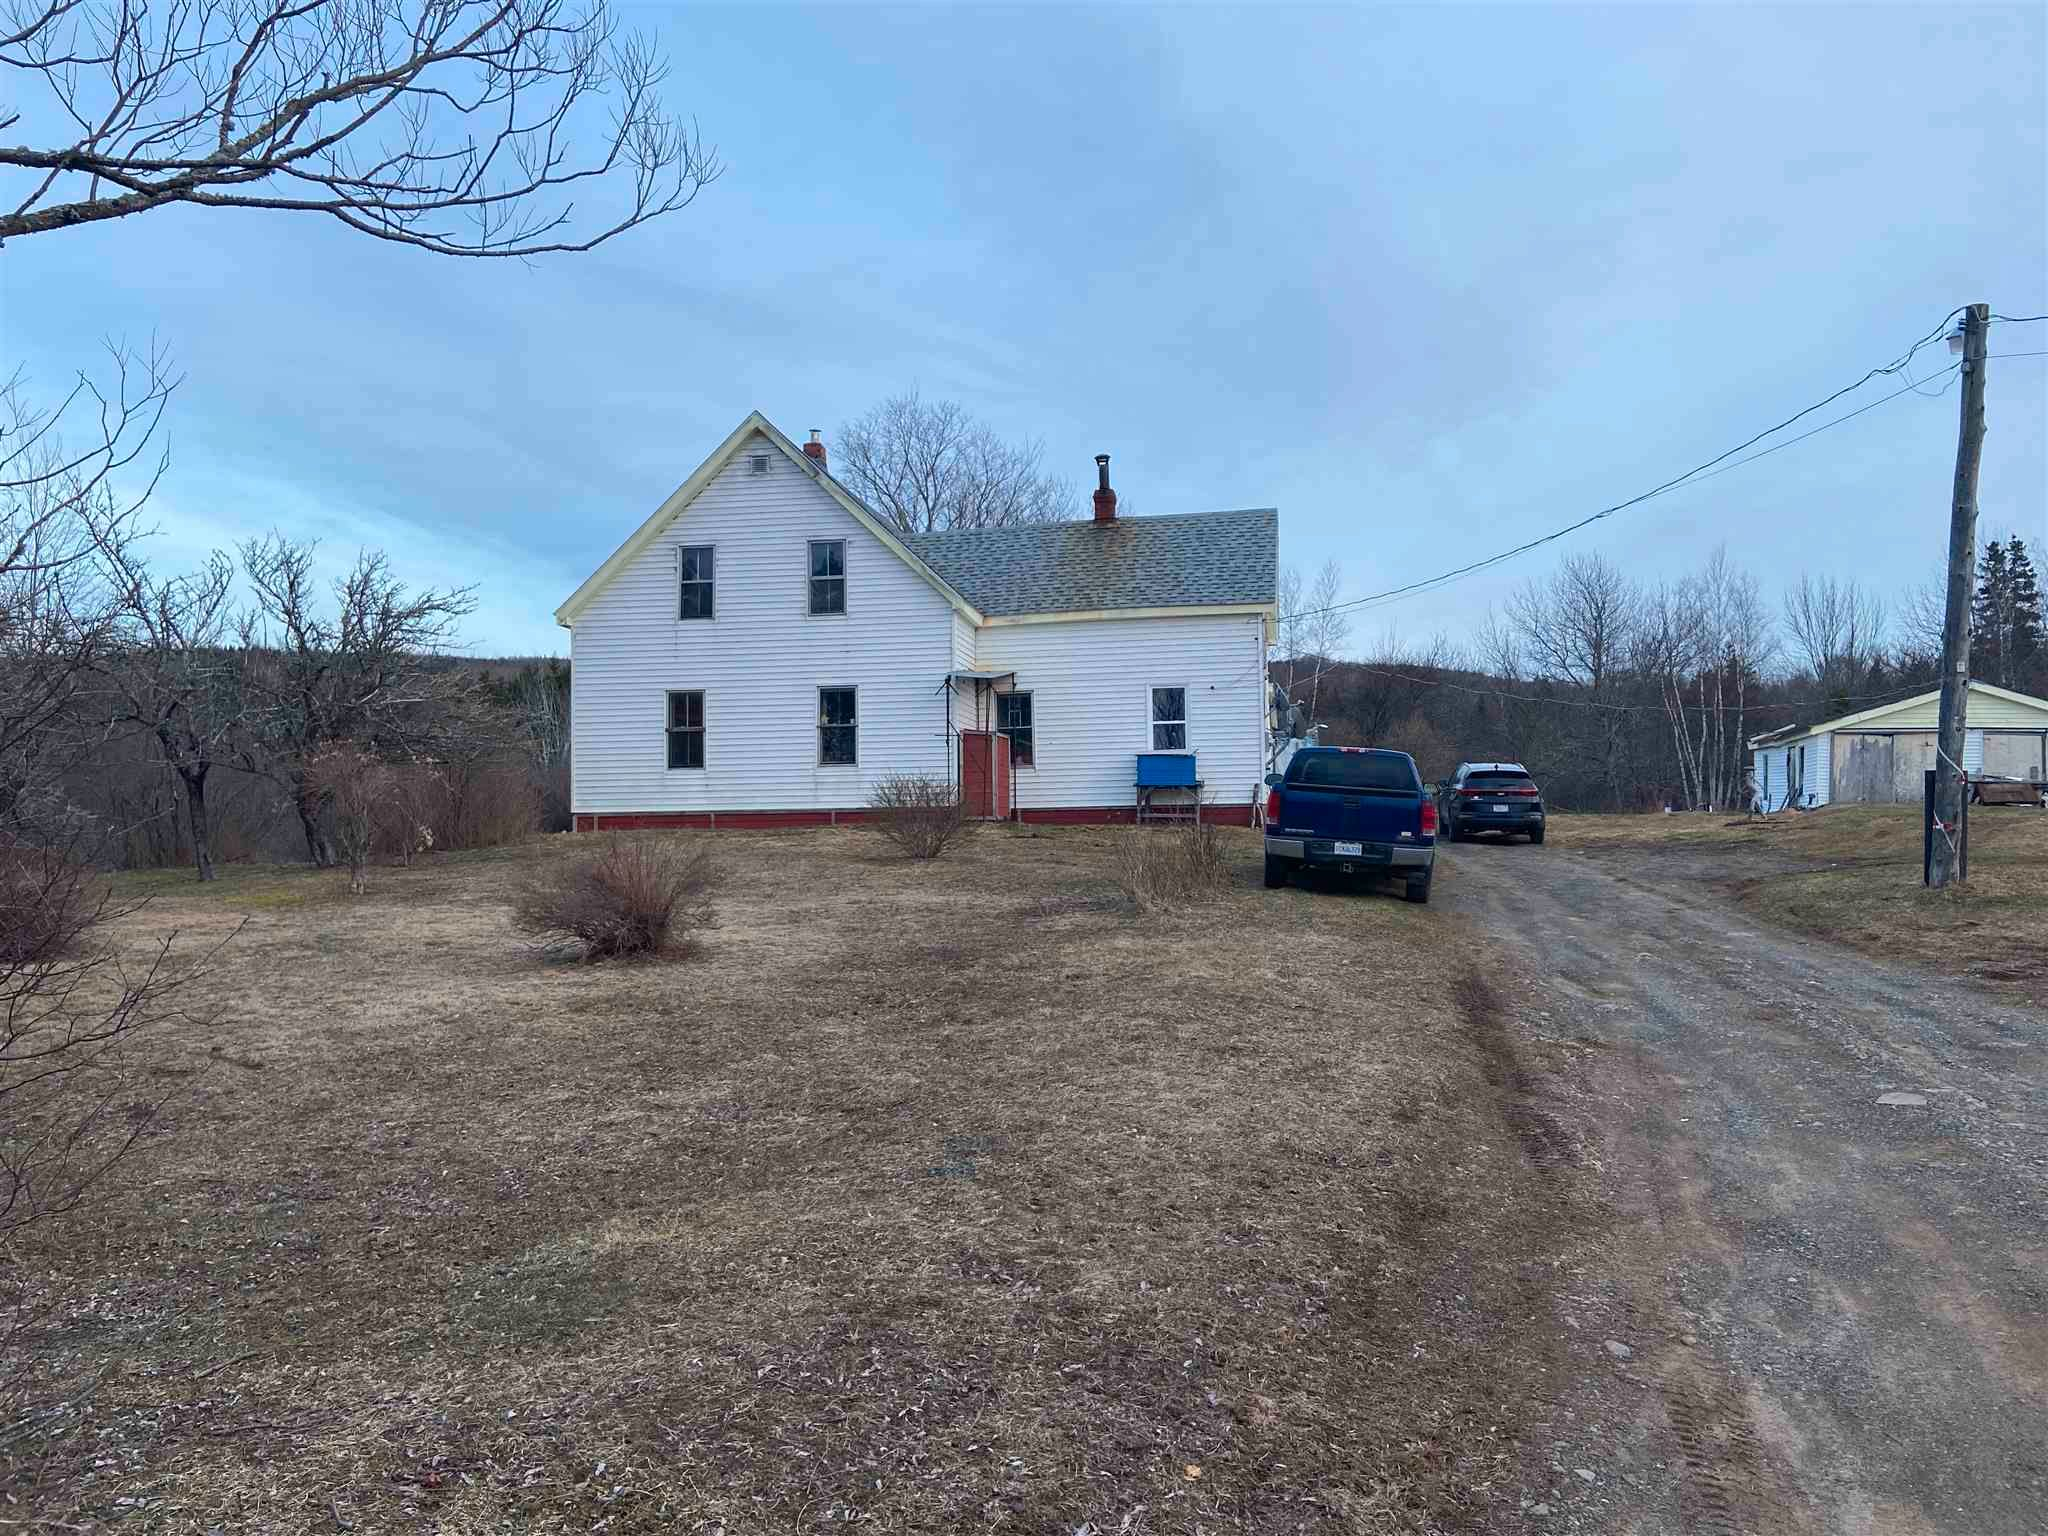 Main Photo: 380 McGraths Mountain Road in French River: 108-Rural Pictou County Residential for sale (Northern Region)  : MLS®# 202107934